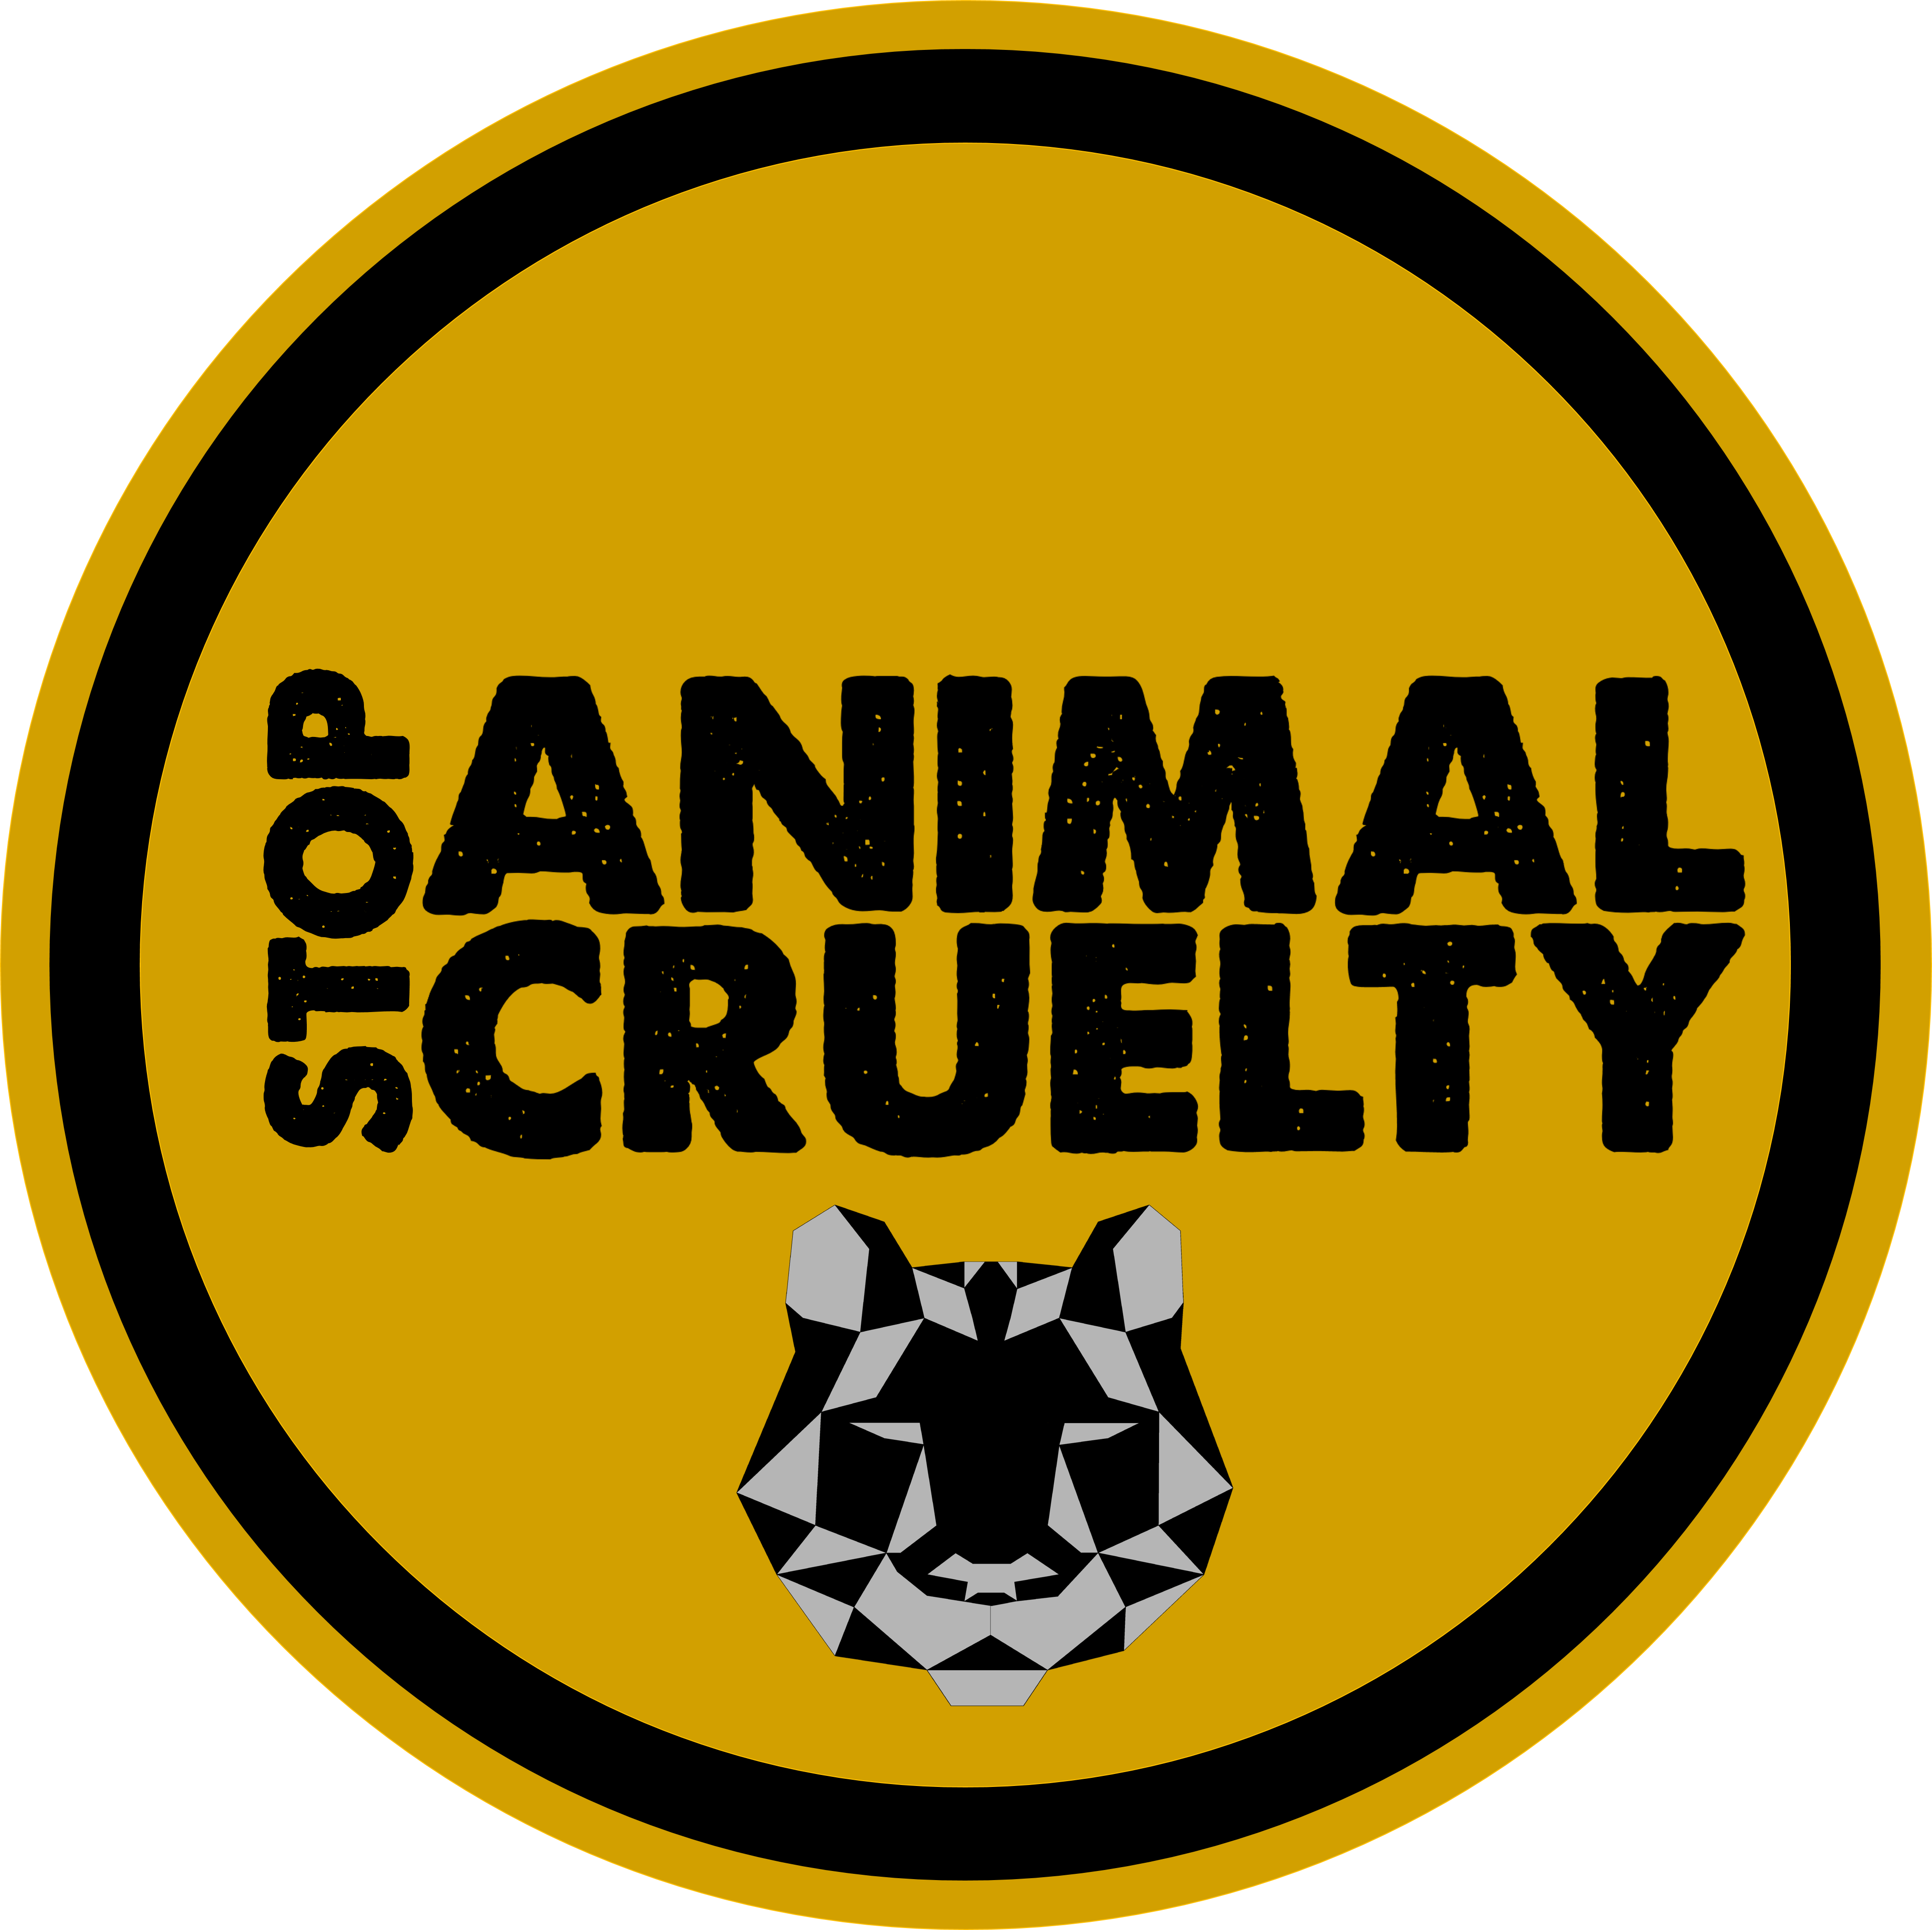 STOP ANIMAL CRUELTY SIGN